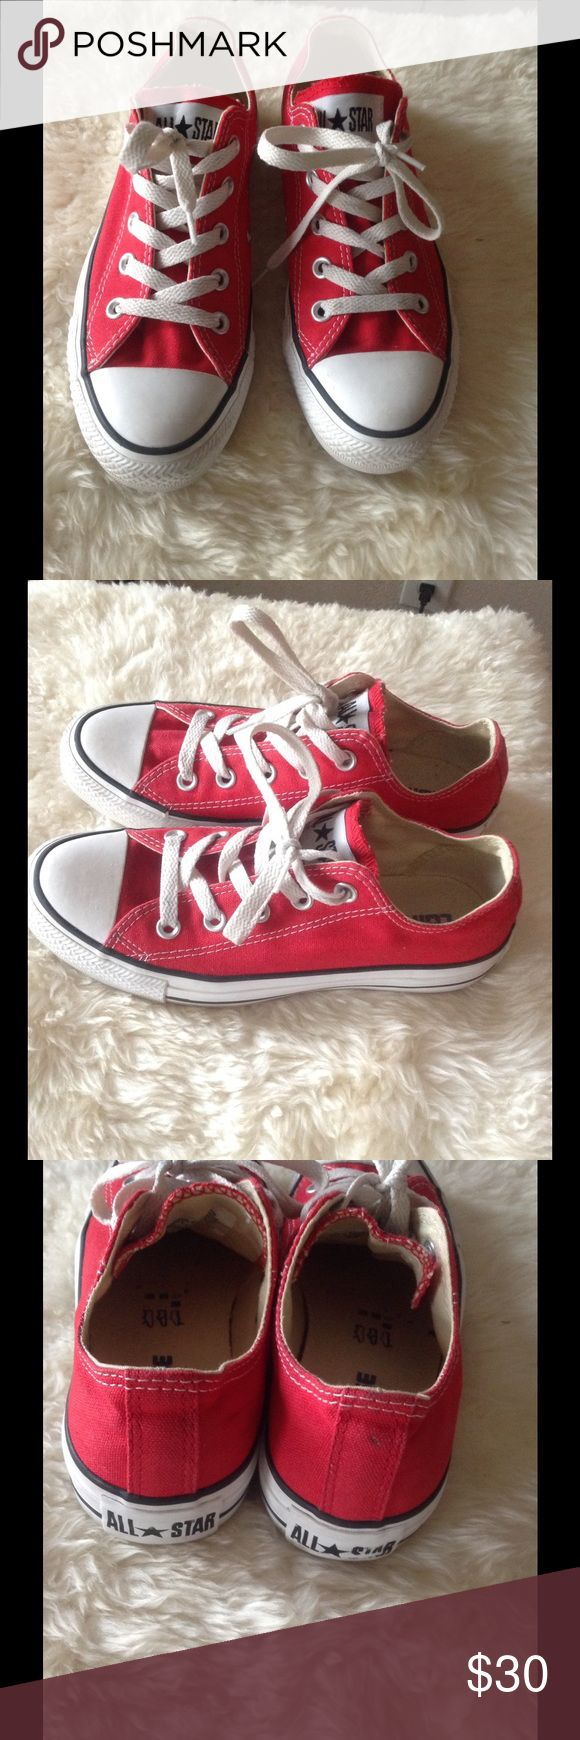 CYBER WEEK DEAL CONVERSE Red Sneakers Gently used & clean. Great condition. Converse Shoes Sneakers